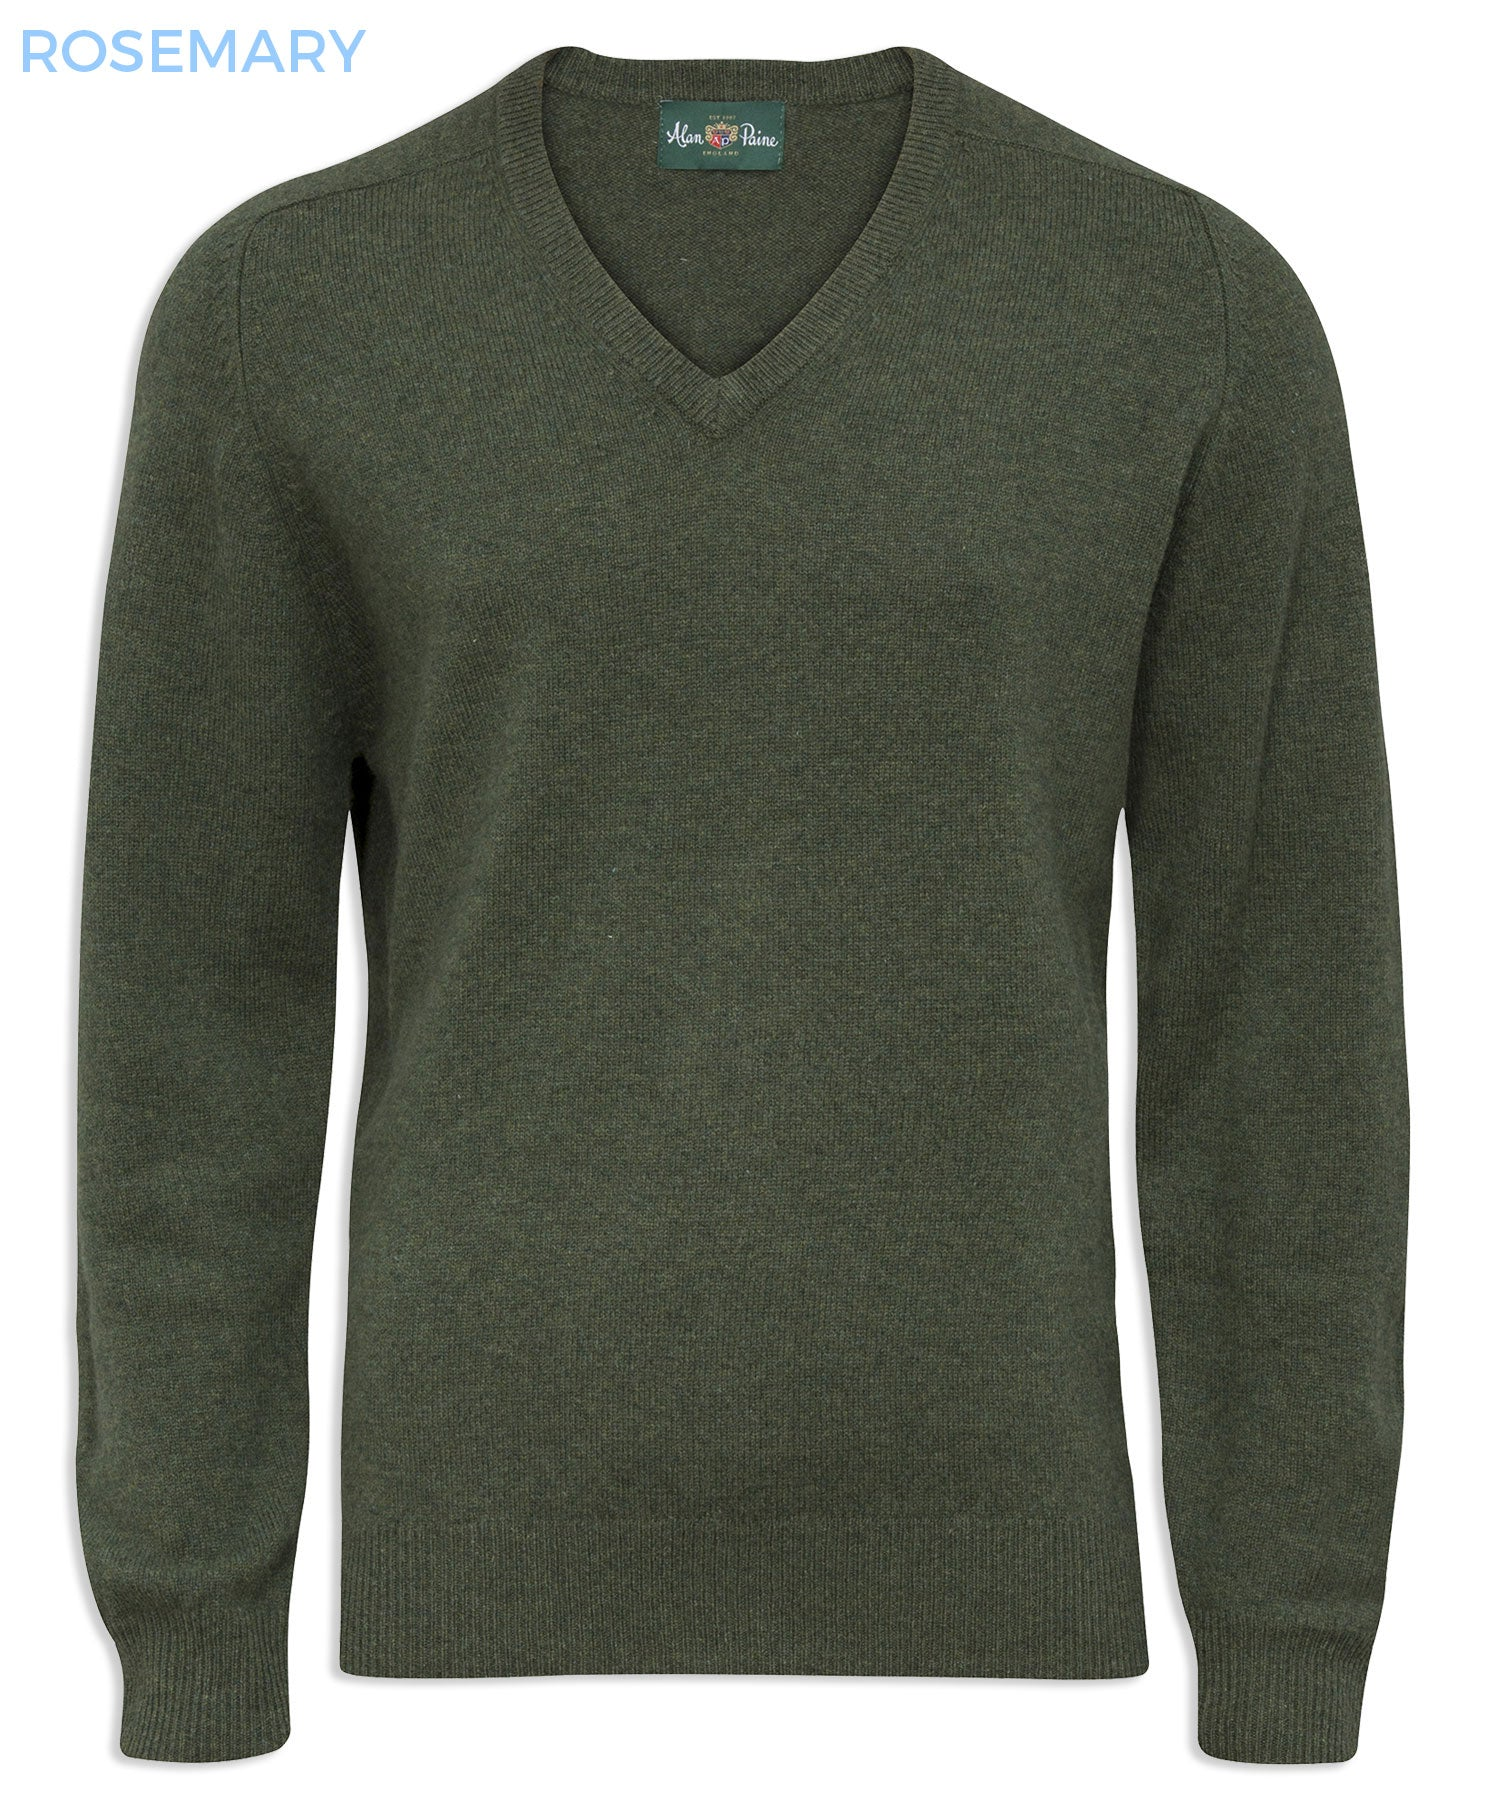 rosemary green Alan Paine Burford Vee Neck Pullover